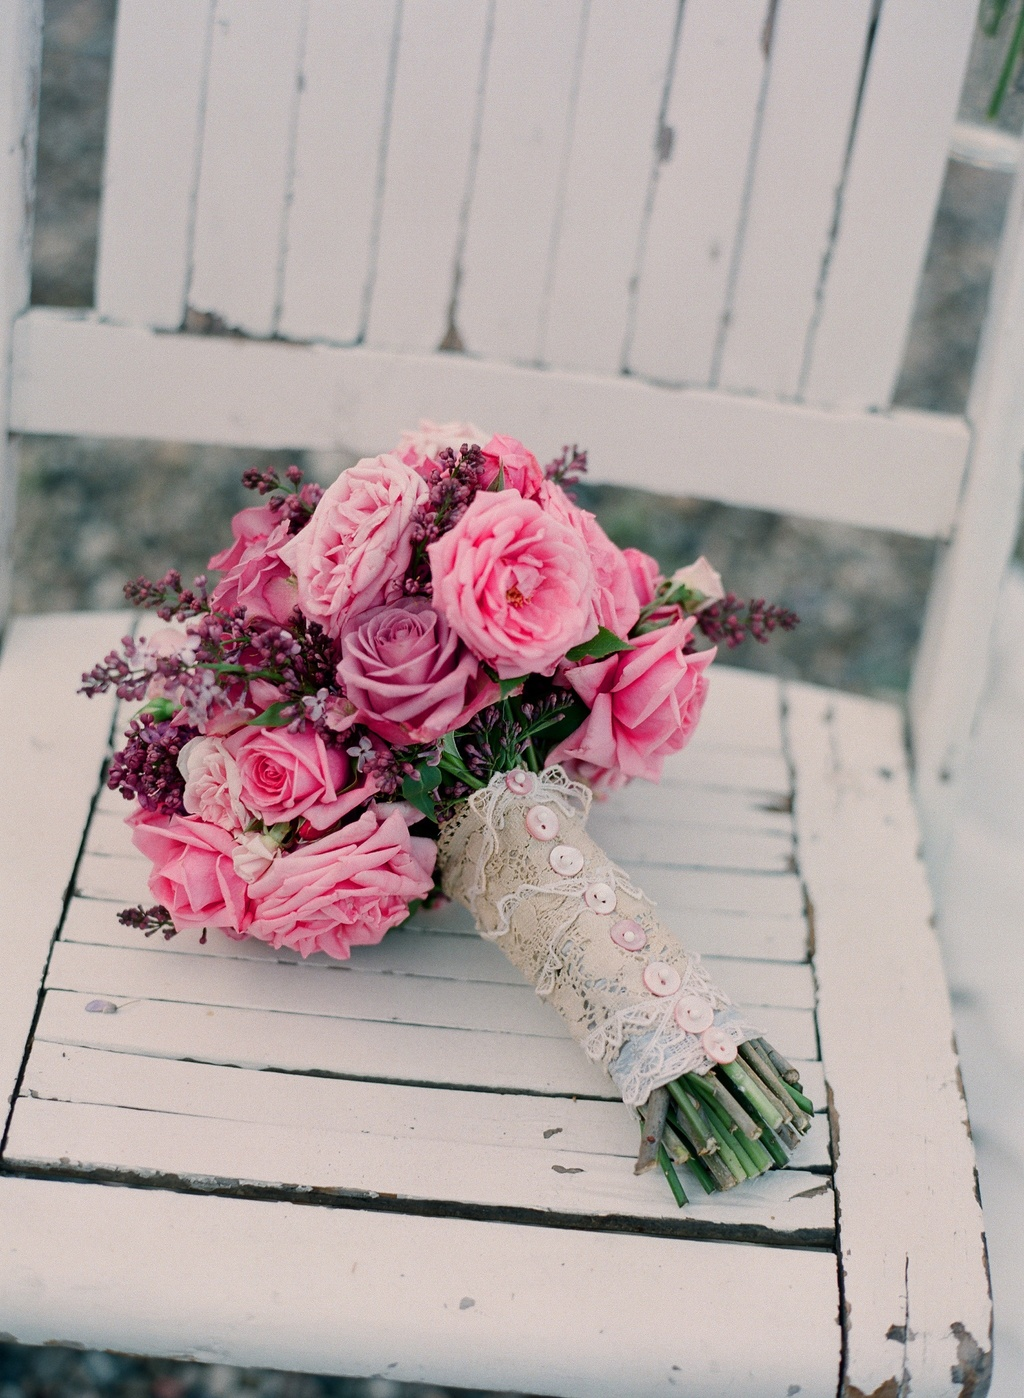 Styled-wedding-beaux-arts-tea-time-monique-lhuillier-santa-barbara-chic-flowers-pink-bouquet-rose-114.full